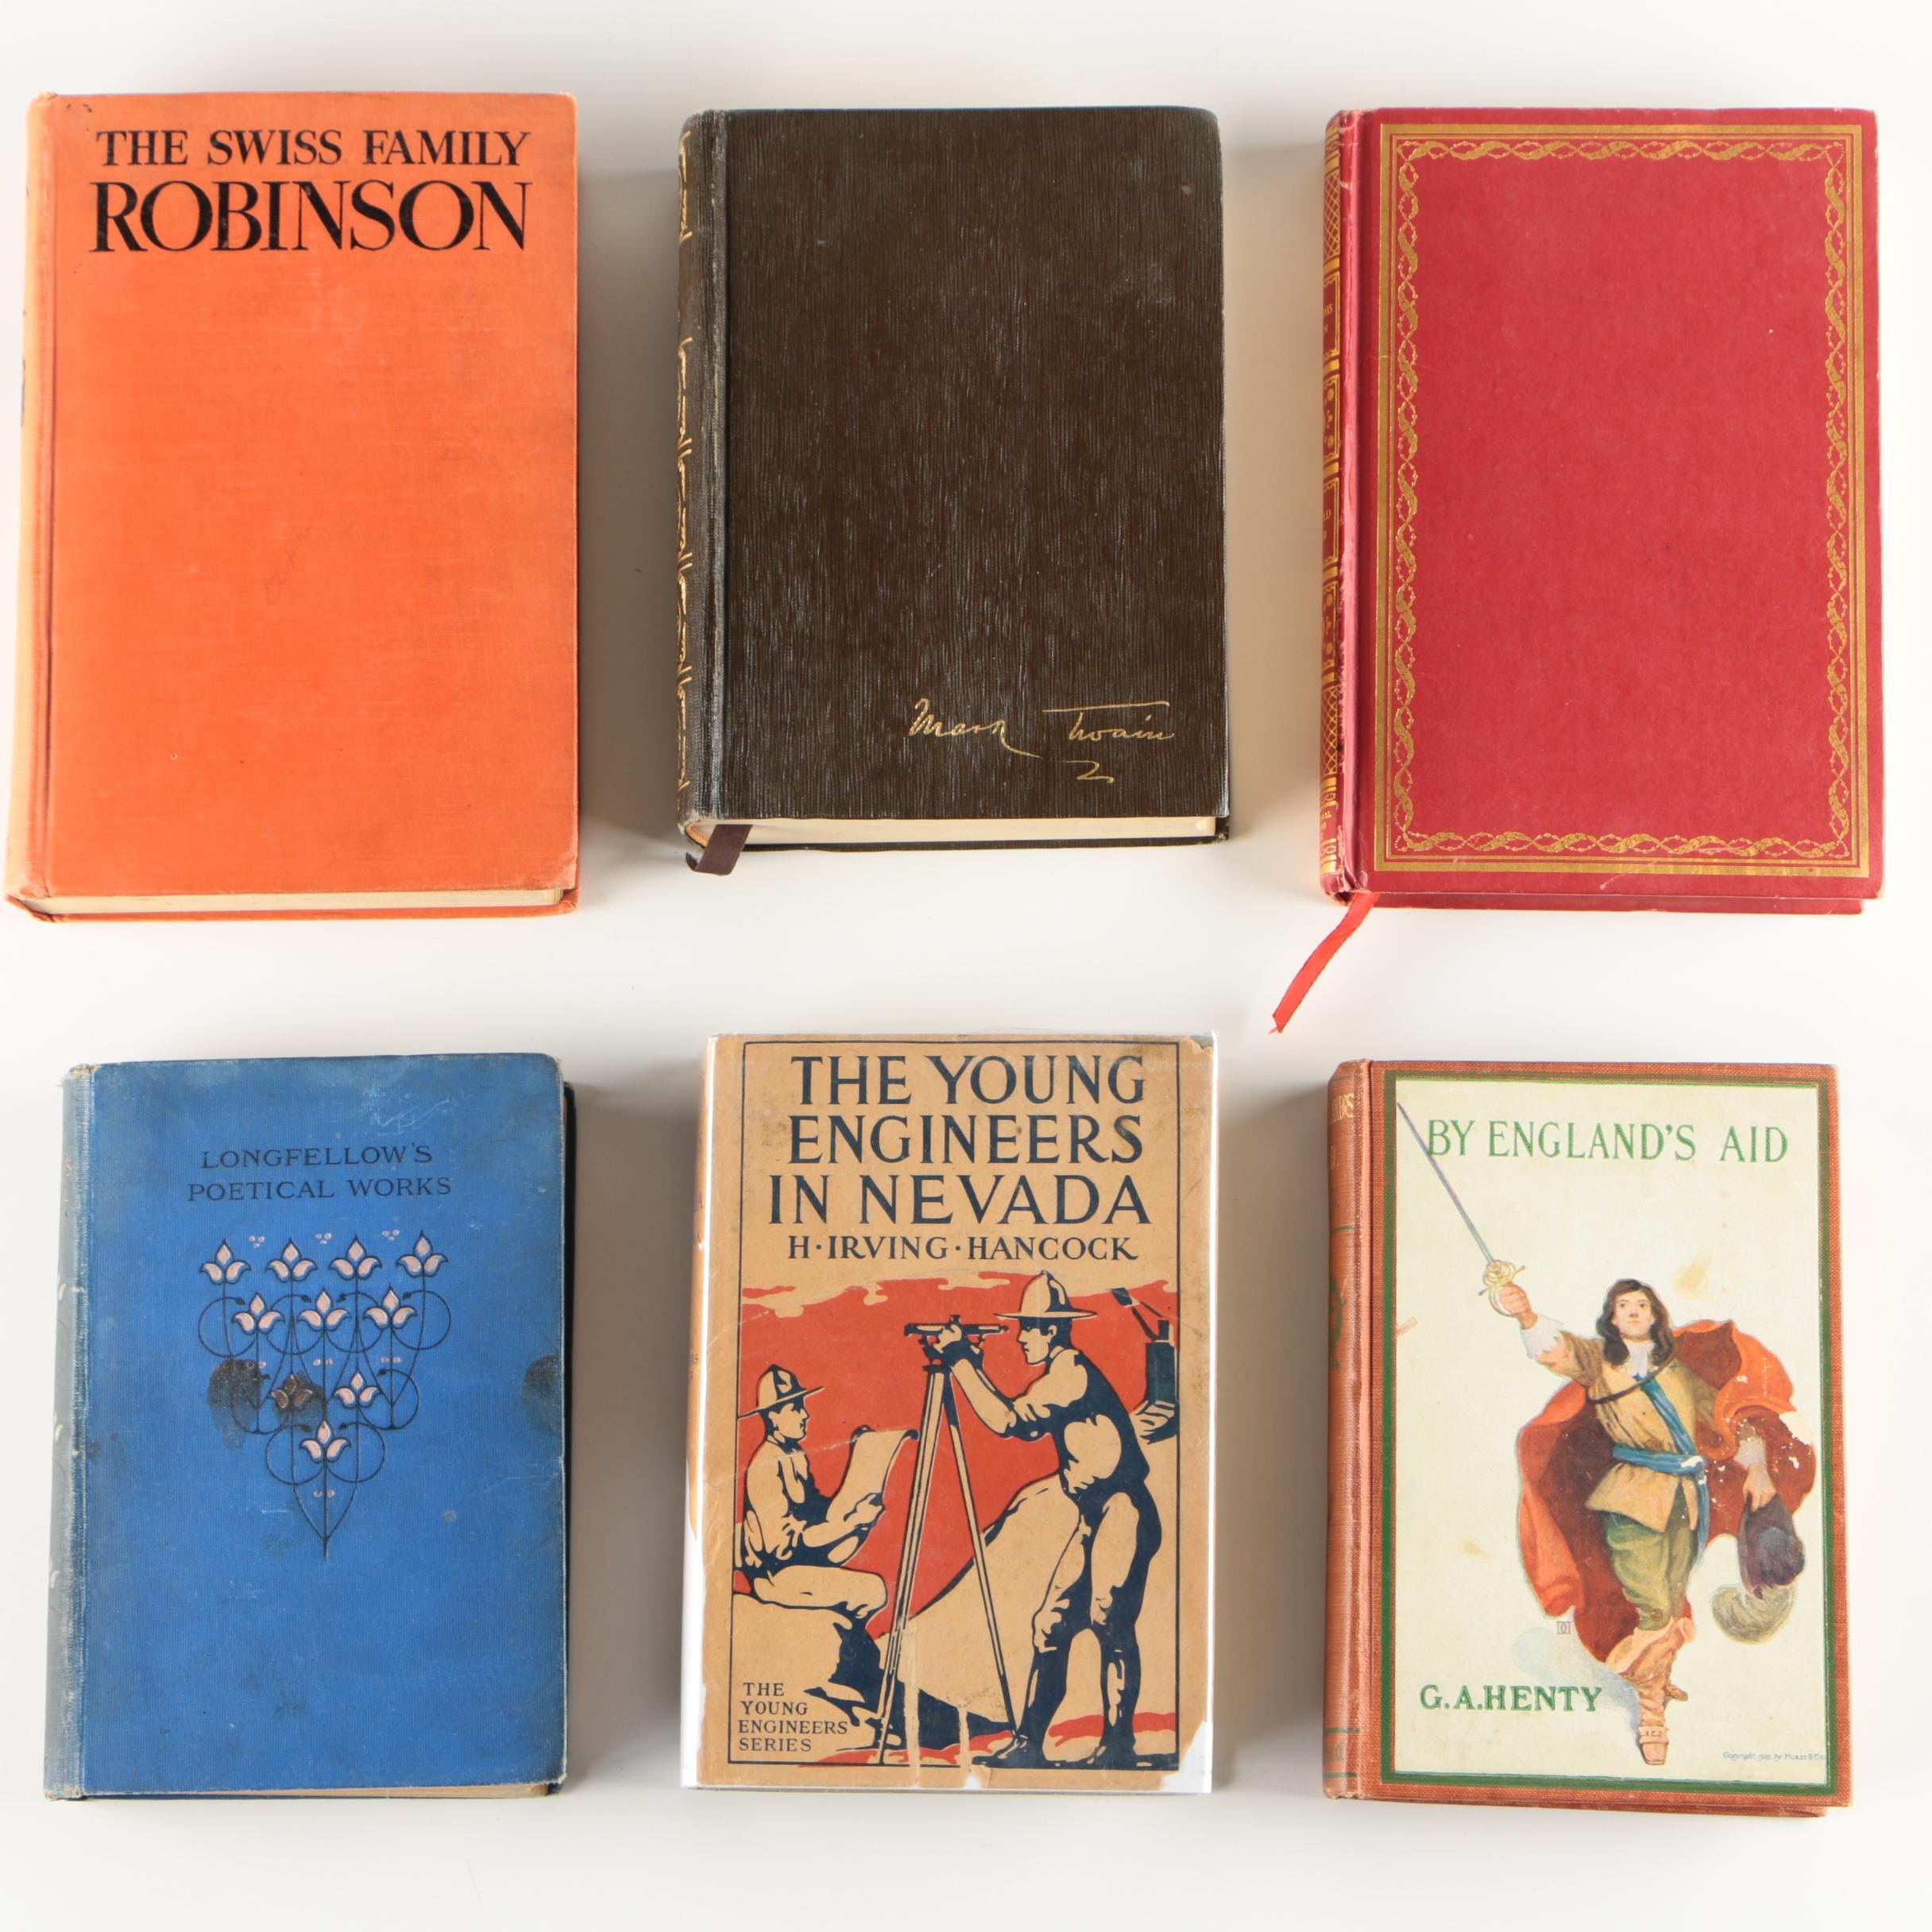 Vintage Books featuring Mark Twain and Henry Wadsworth Longfellow